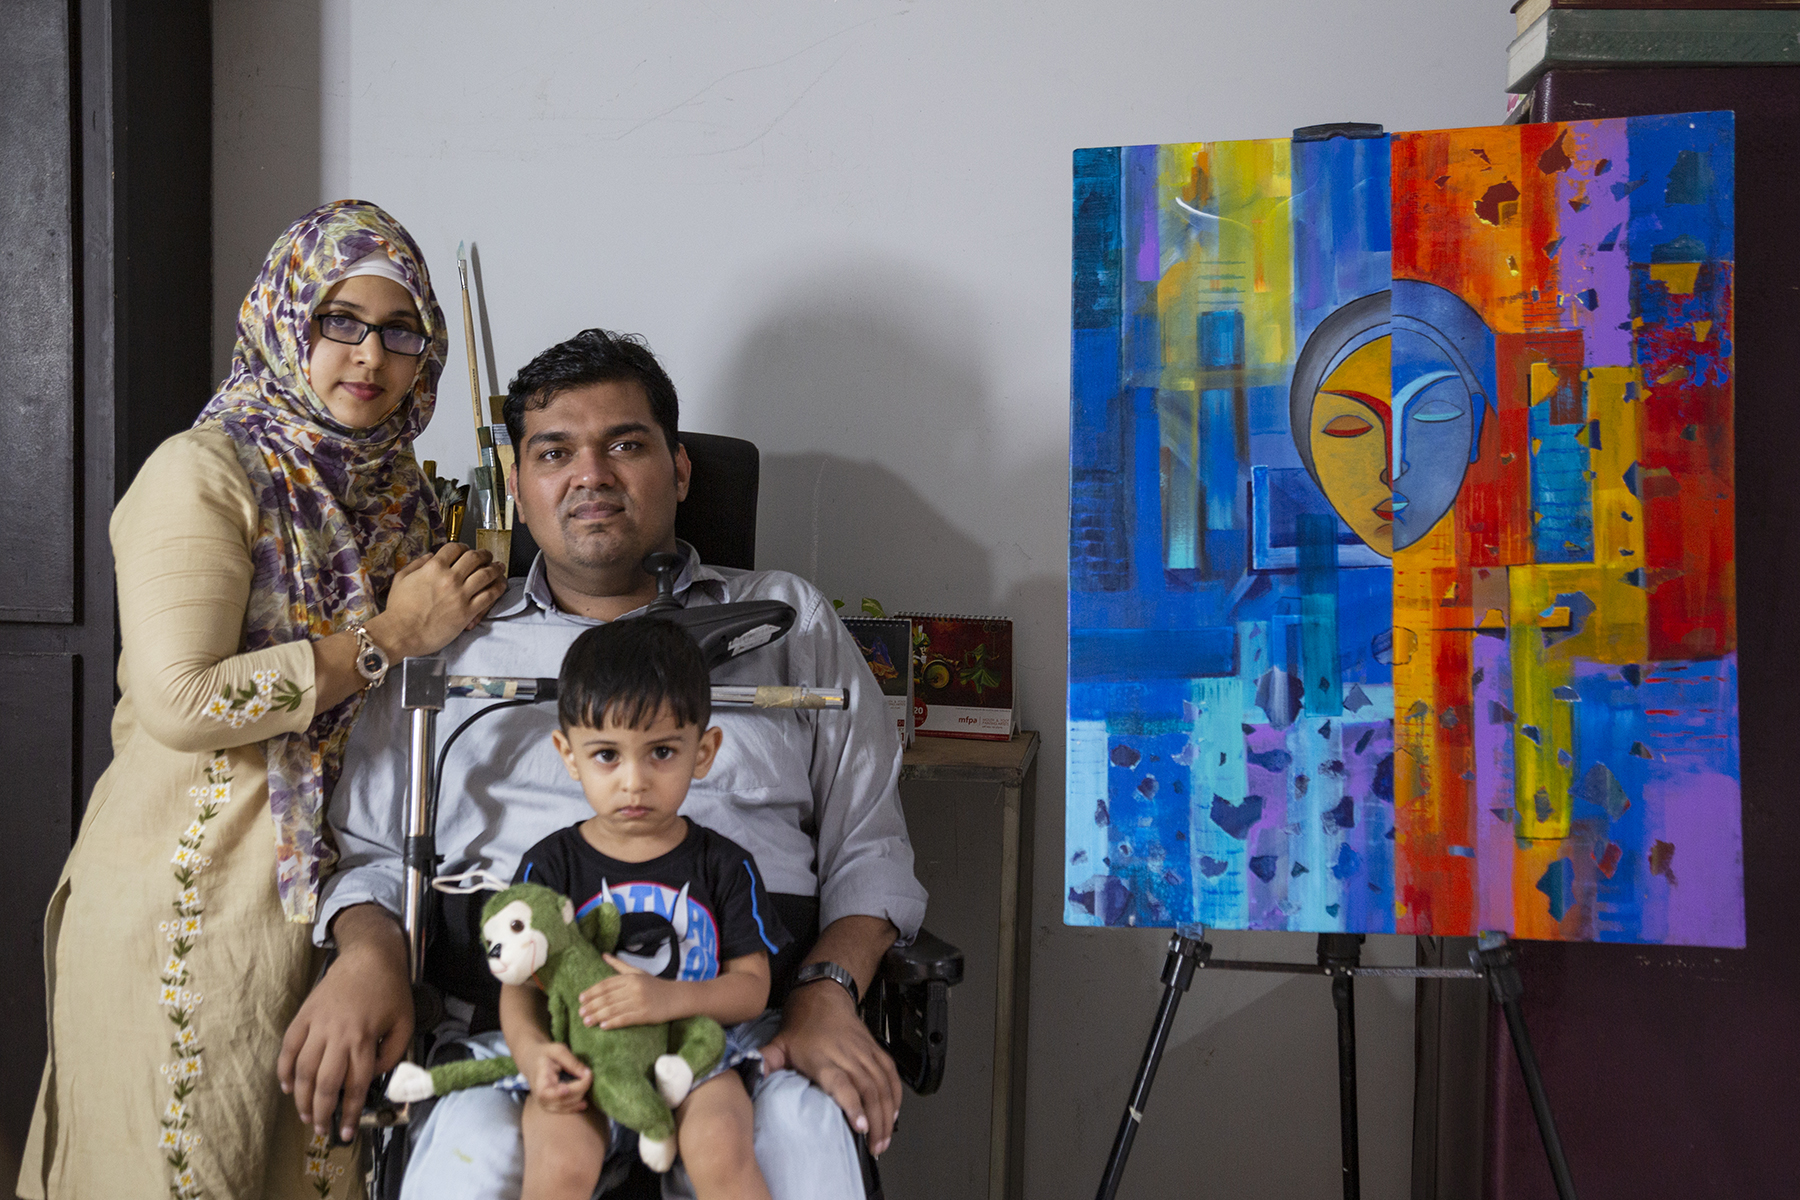 Jesfer poses with his wife Fathima PV (31) and son Kenzal Rumi (2) next to his painting put up on an easel. Jesfer wears a pale blue shirt and matching jeans. Kenzal sits on his lap, wearing a black T-shirt and holding a green stuffed monkey. Fathima stands to the left, leaning against Jesfer with her arm resting on his shoulder. She wears specs with a black frame, beige kameez and multi-coloured shawl covering her head. The painting is in bold hues of red, yellow and blue, with a mask-like face in the centre.